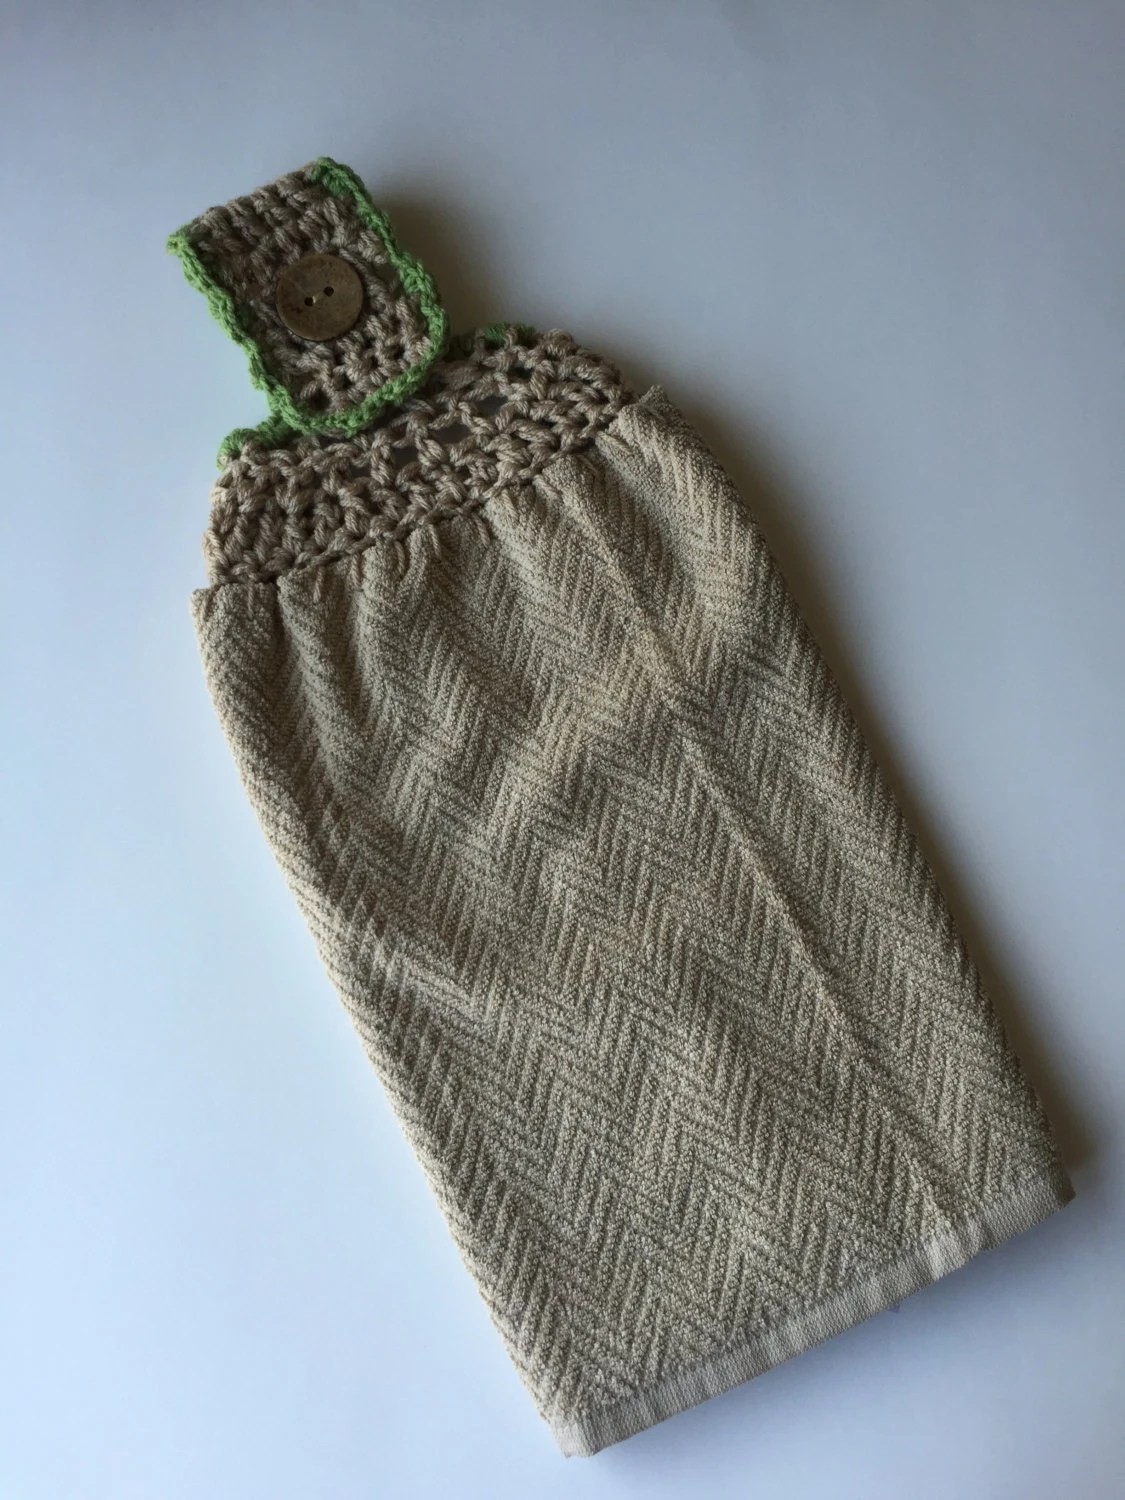 Knitted Towels Holder For Kitchen